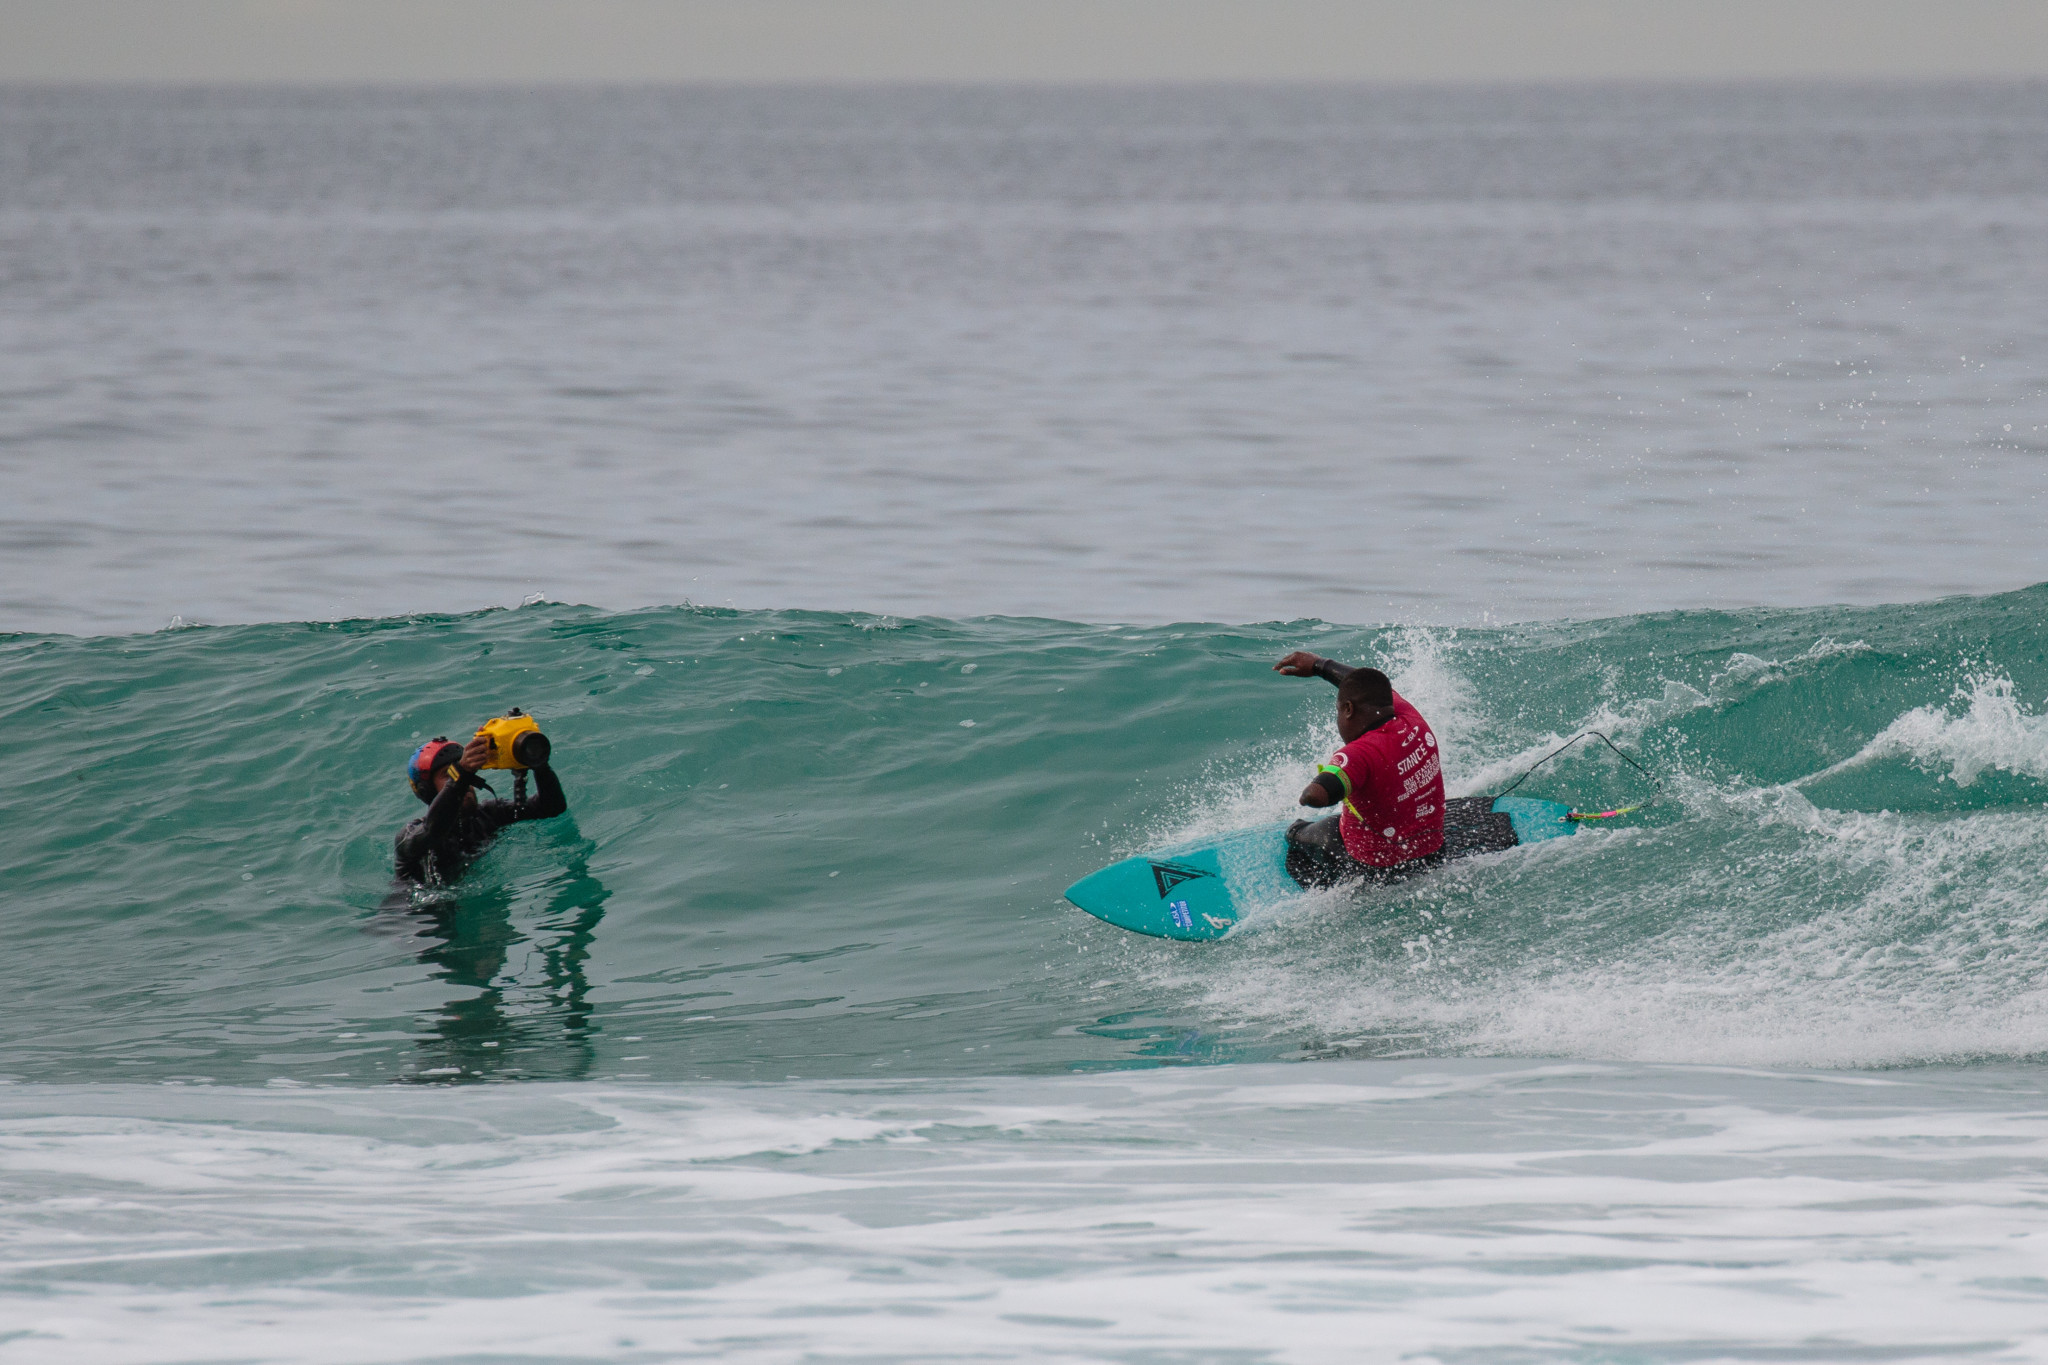 Teenage sensation shines on day three of ISA World Adaptive Surfing Championships